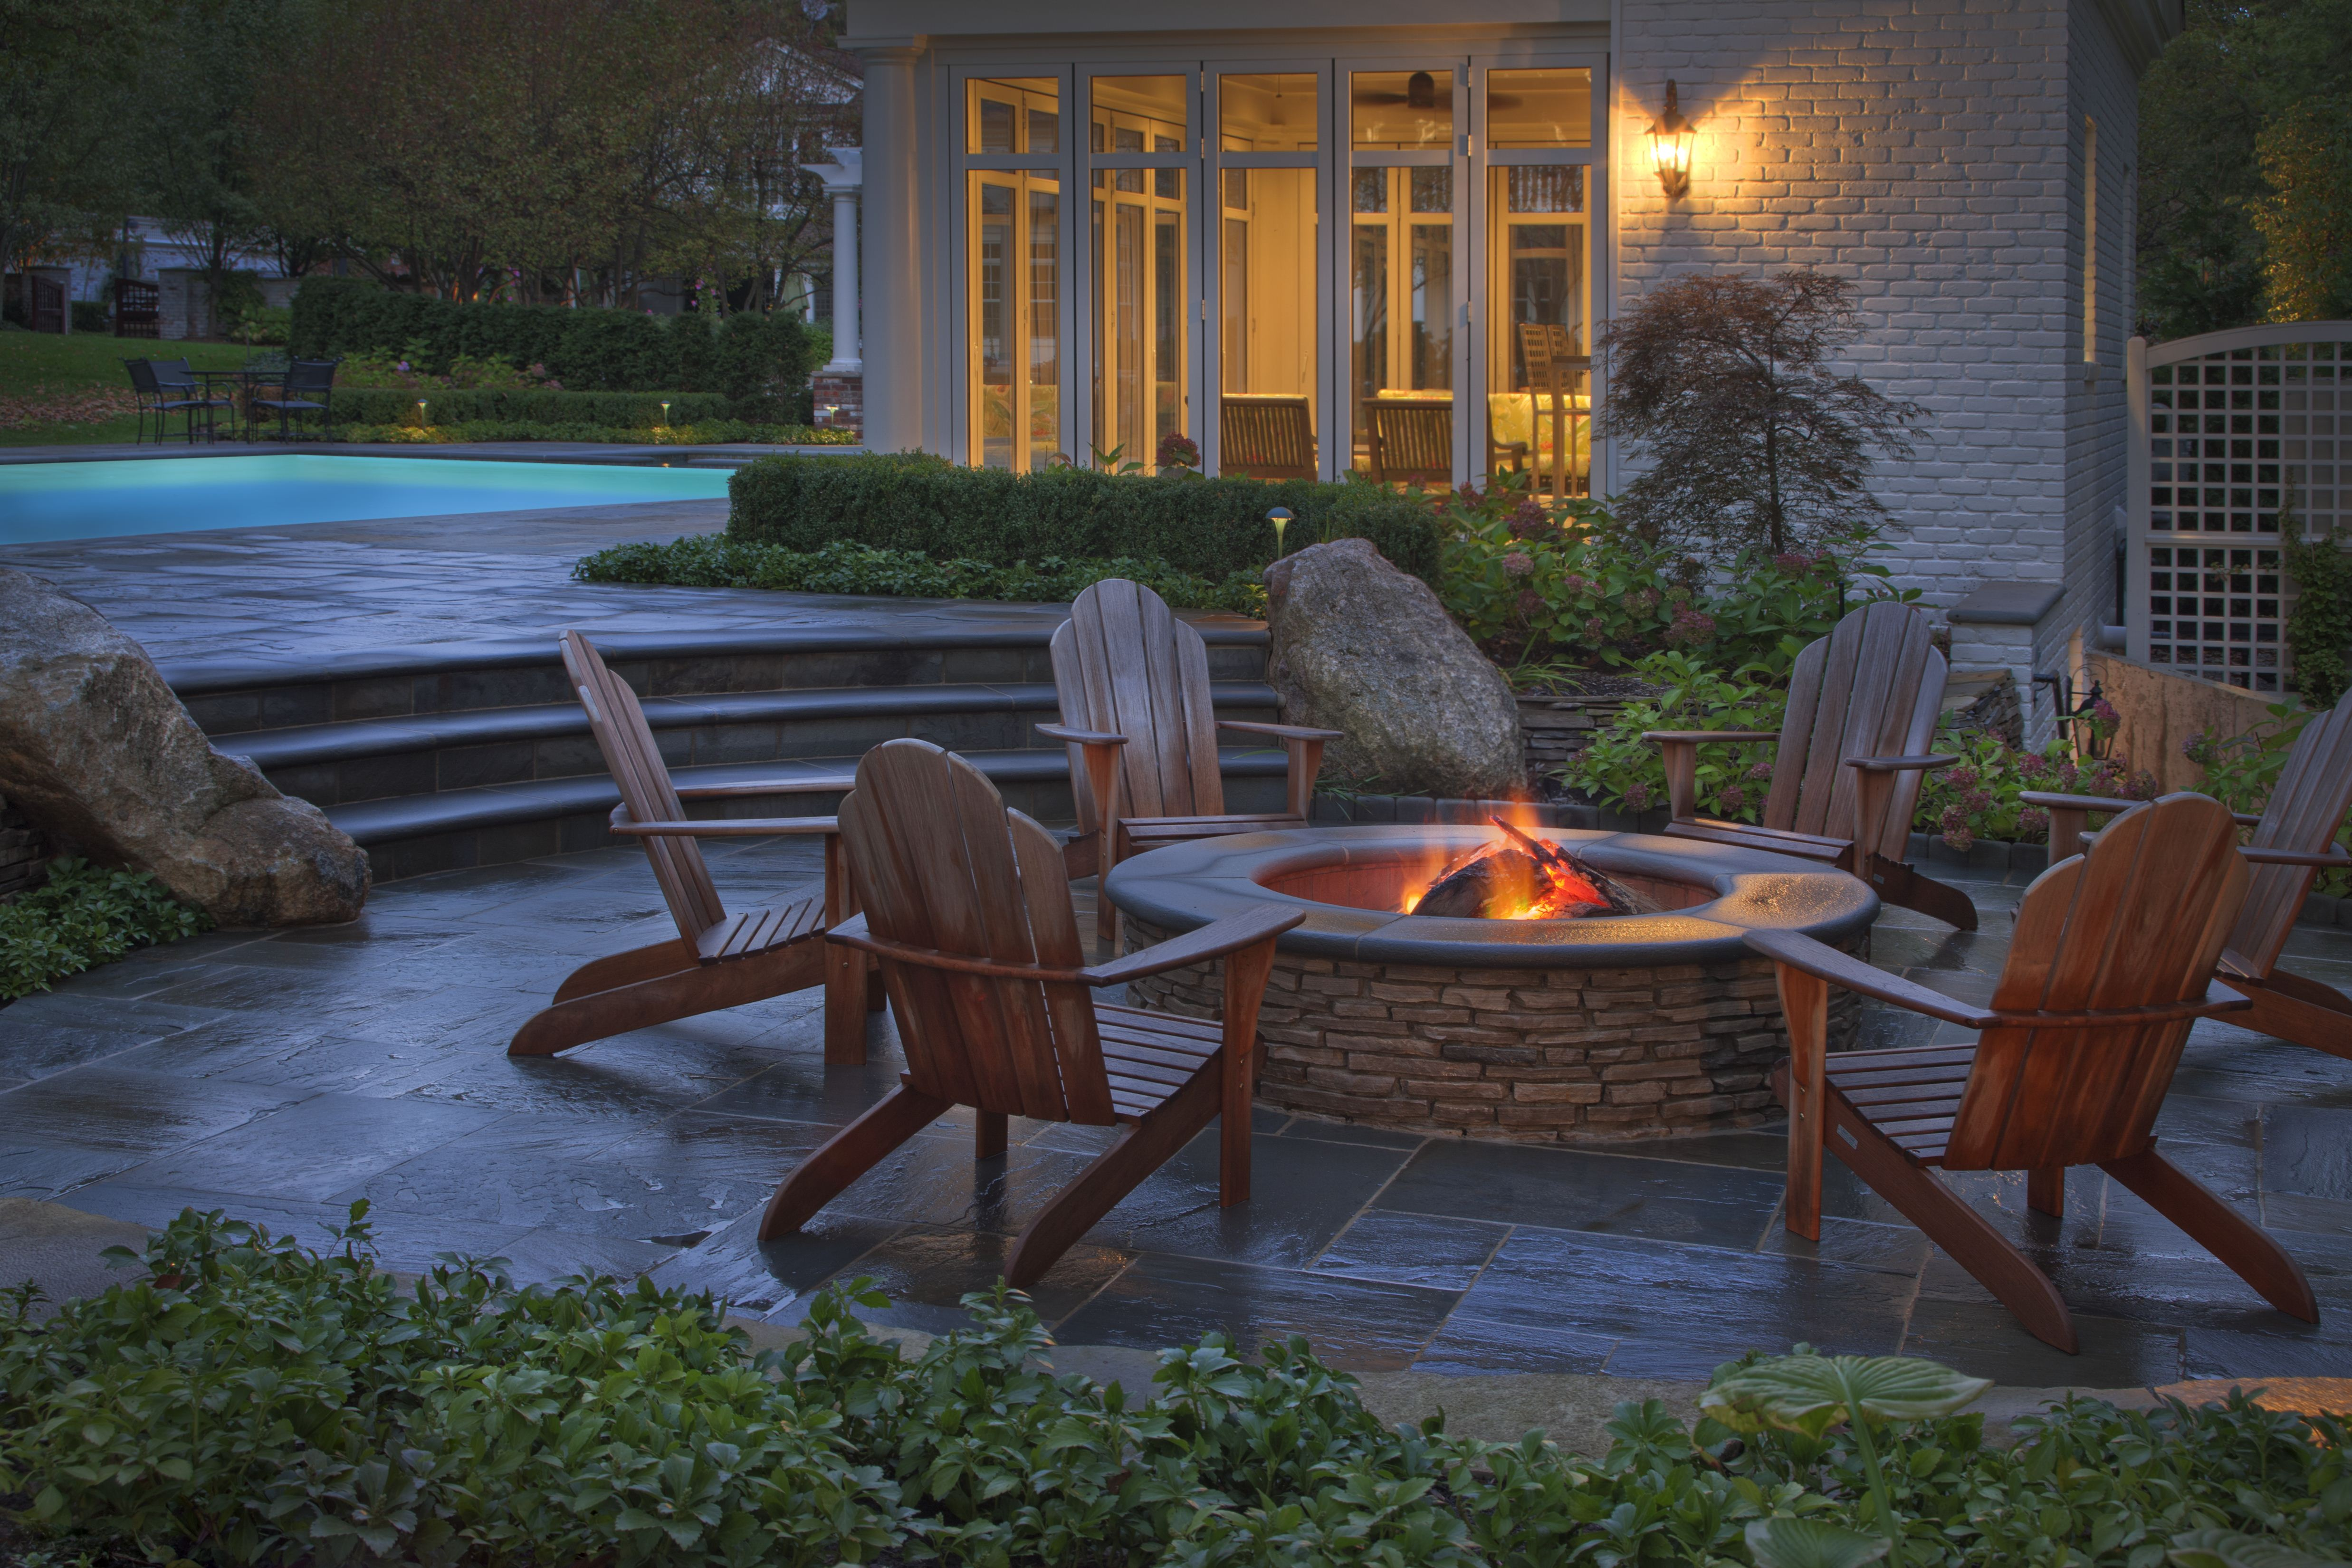 New Backyard Landscaping Information Offers Design Ideas ... on Garden Ideas With Fire Pit id=70939